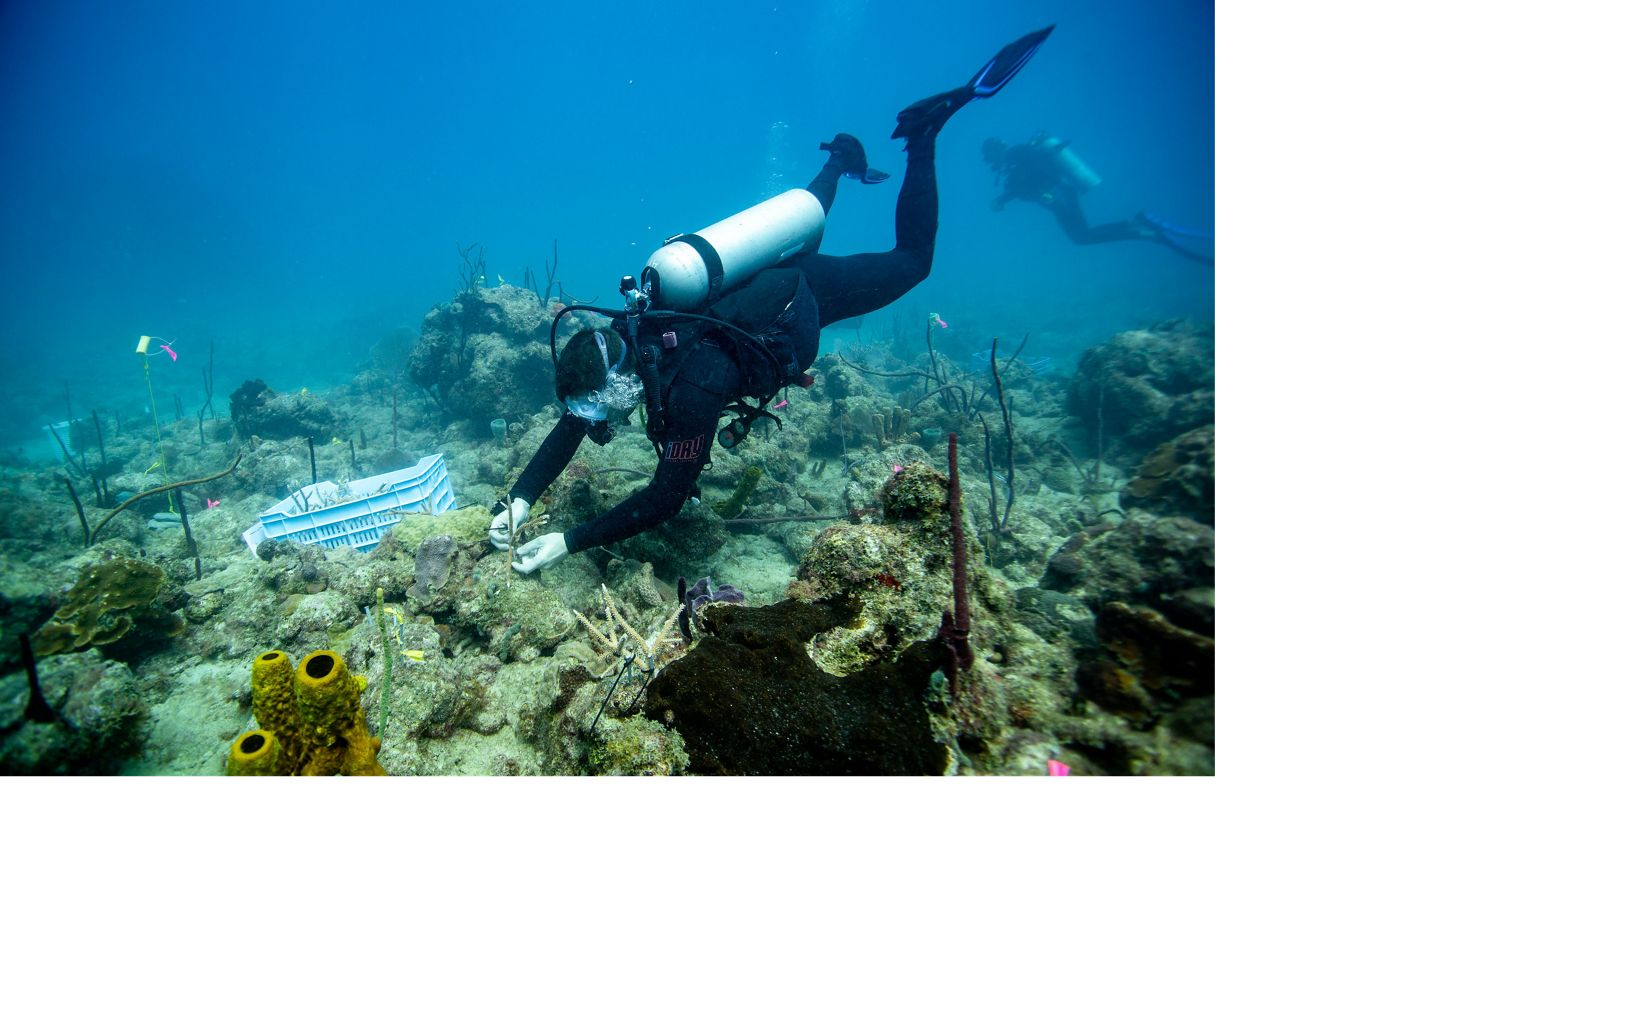 A diver uses a zip tie to attach a coral fragment to an unhealthy reef.